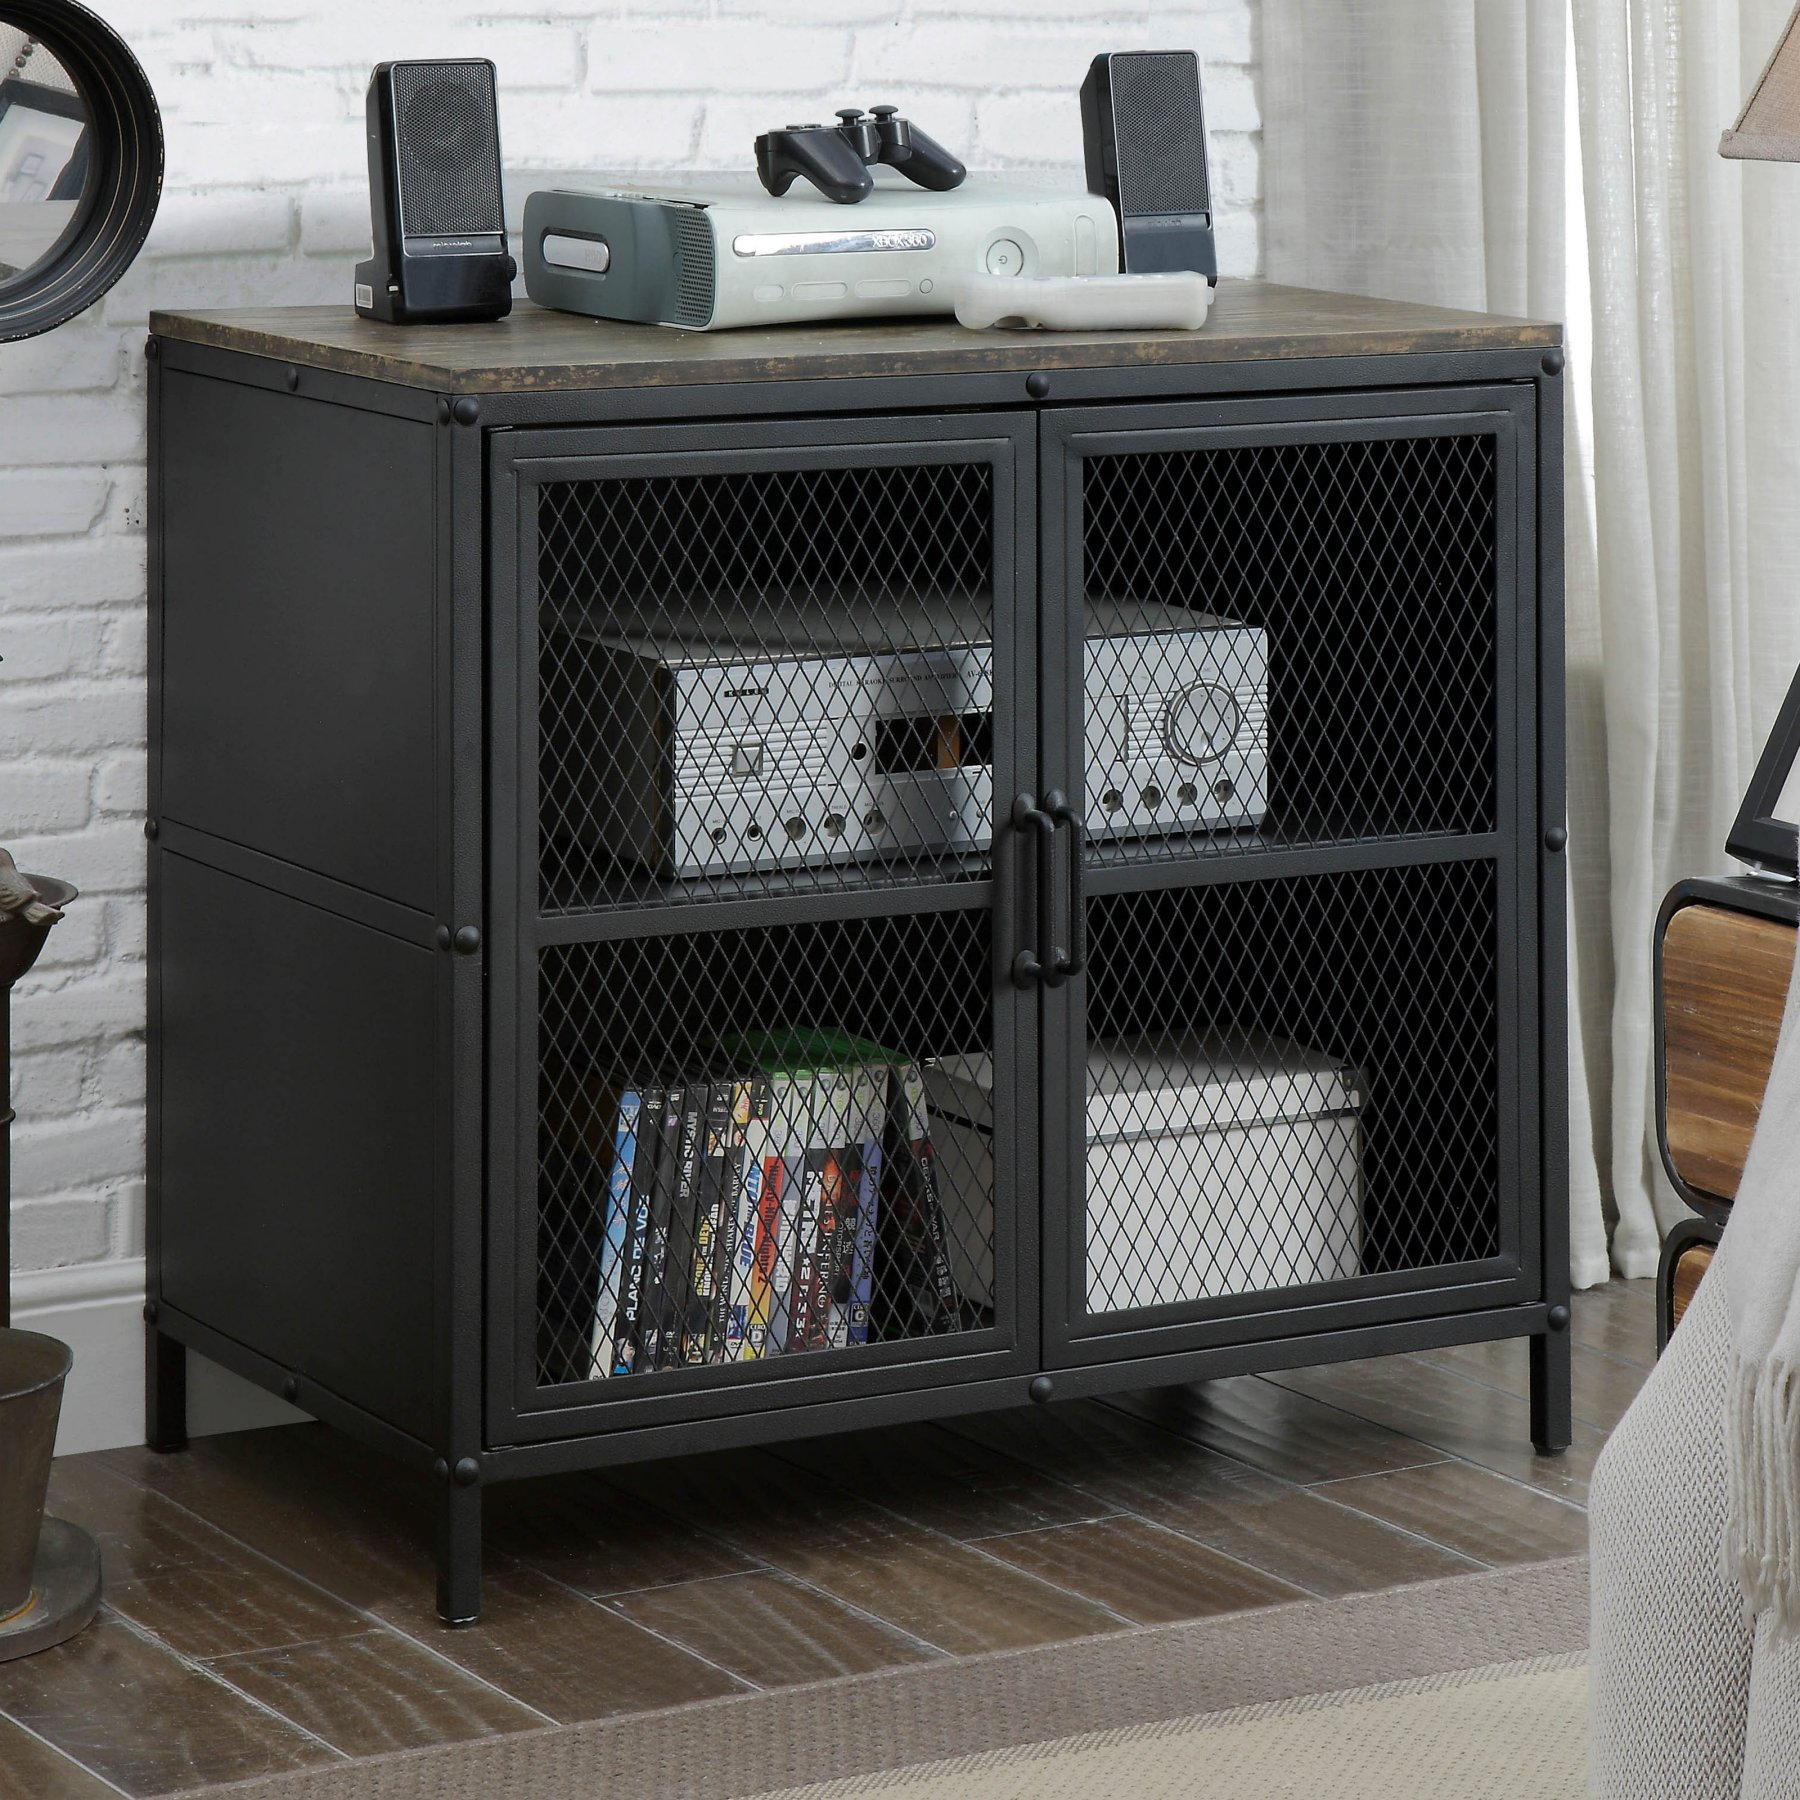 Furniture Of America Travola Tv Stand With Mesh Doors – Sand With Casolino Sideboards (View 11 of 30)